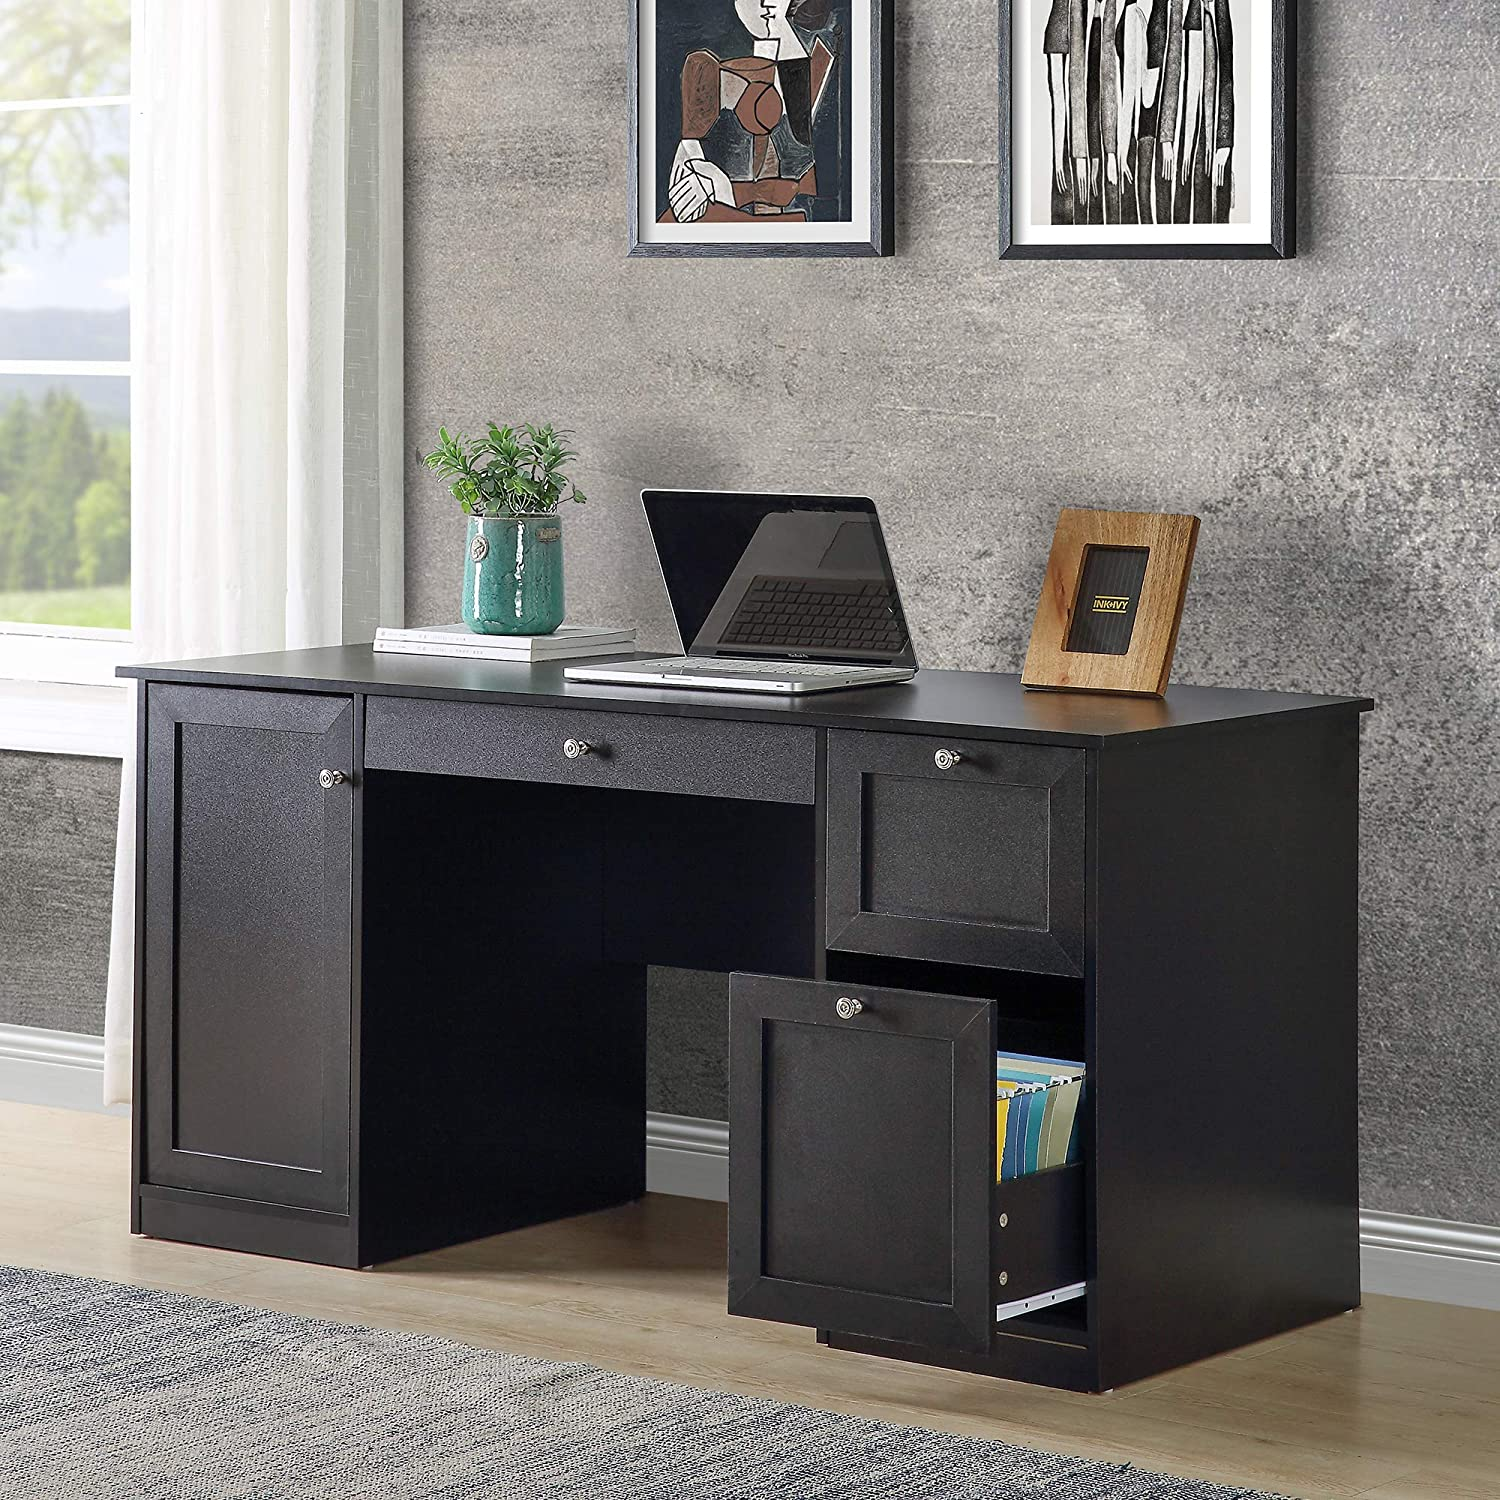 Merax Home Office Computer 2 Drawers/Pullout Keyboard/Storage Cabinet Desk Table, 59